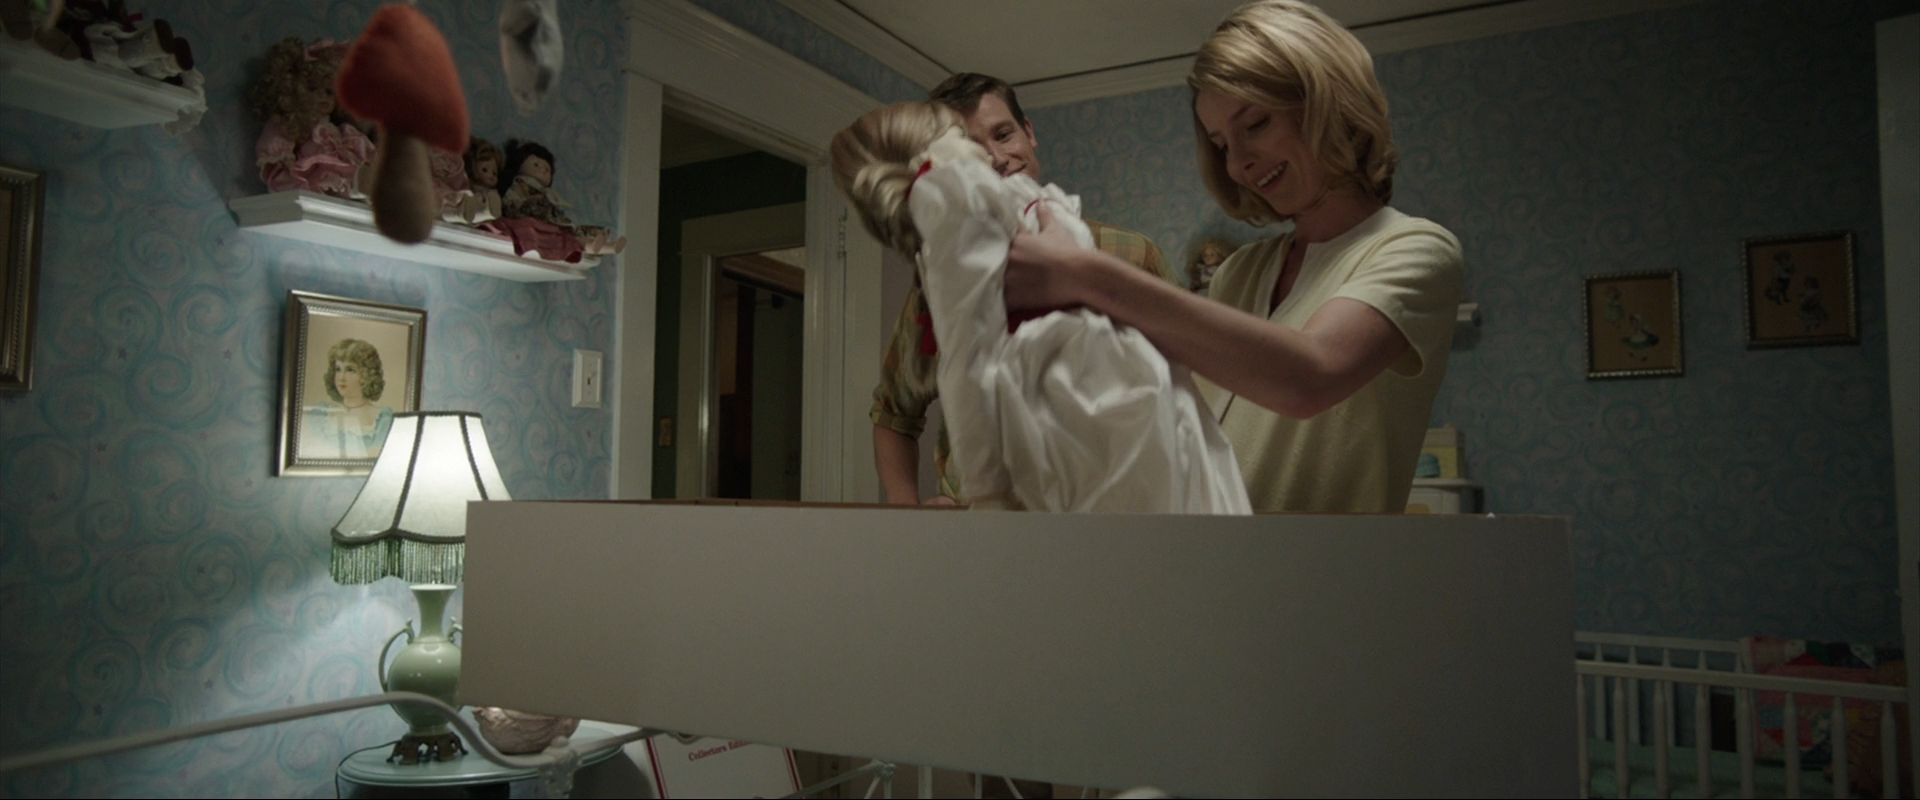 ��������� �������� / Annabelle (2014) BDRip 1080p